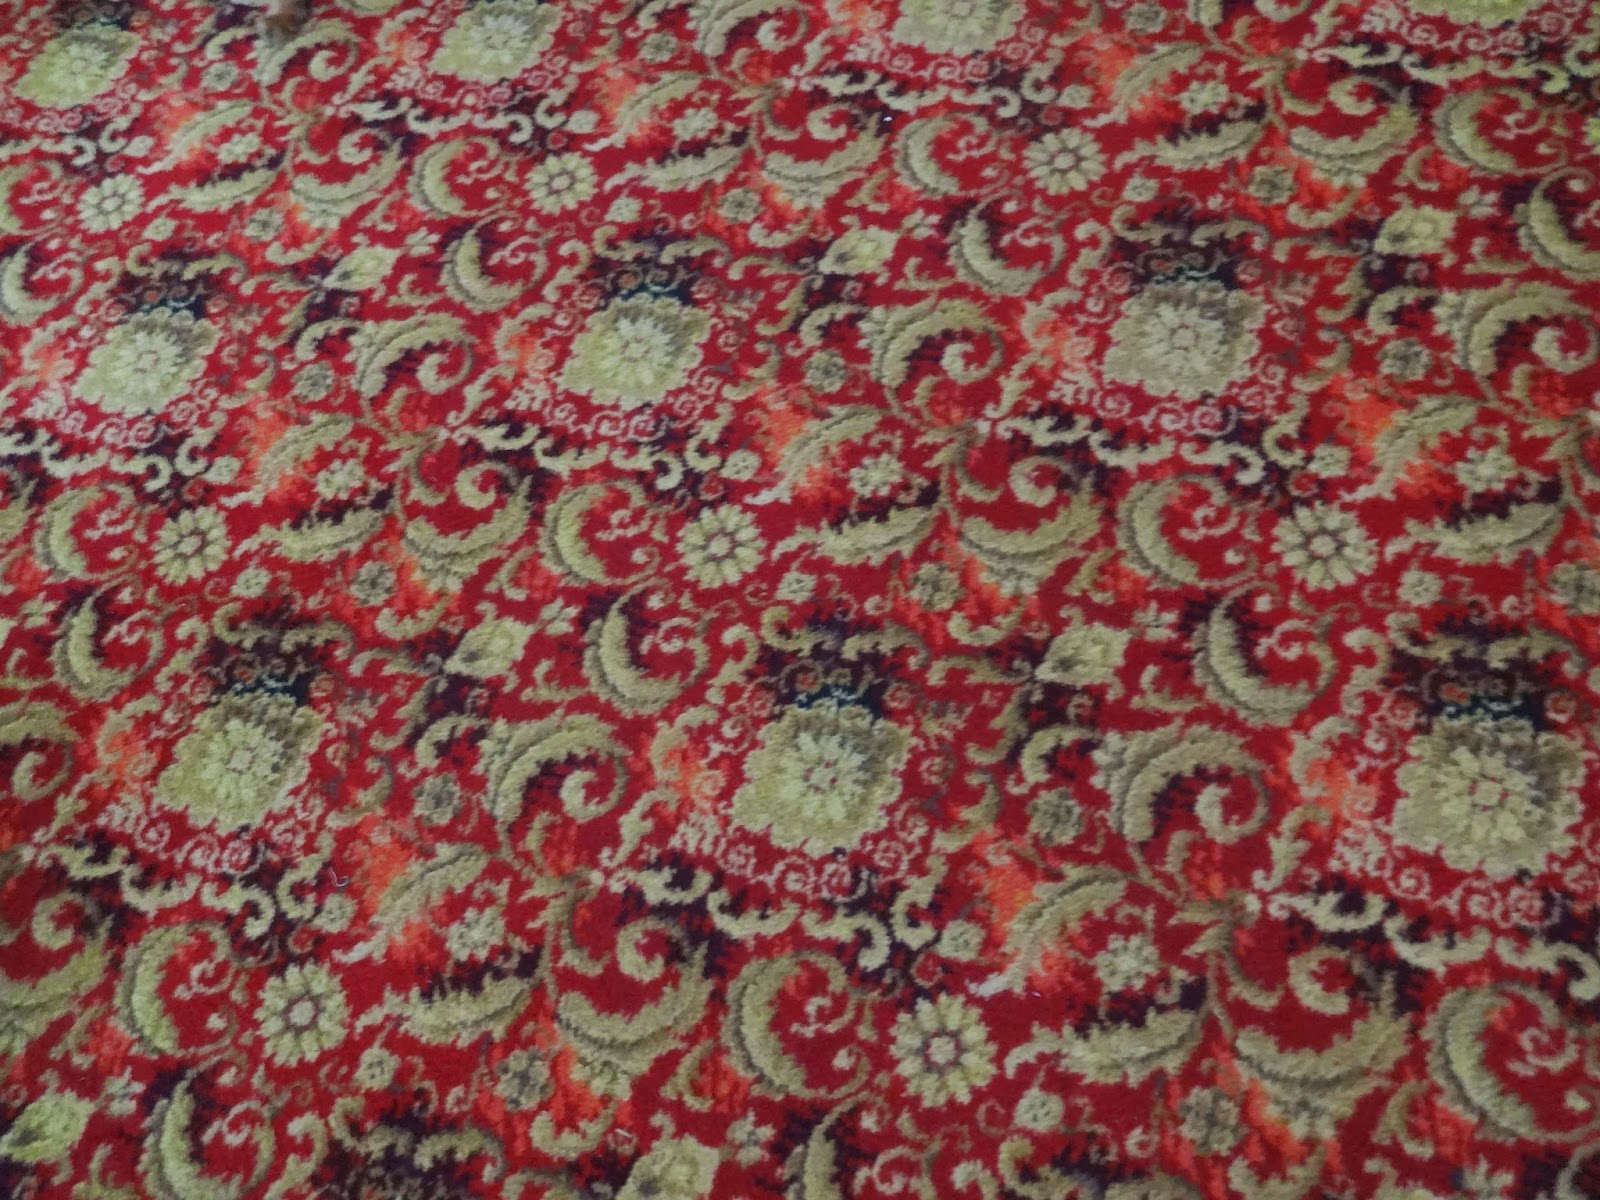 retro red swirled carpet